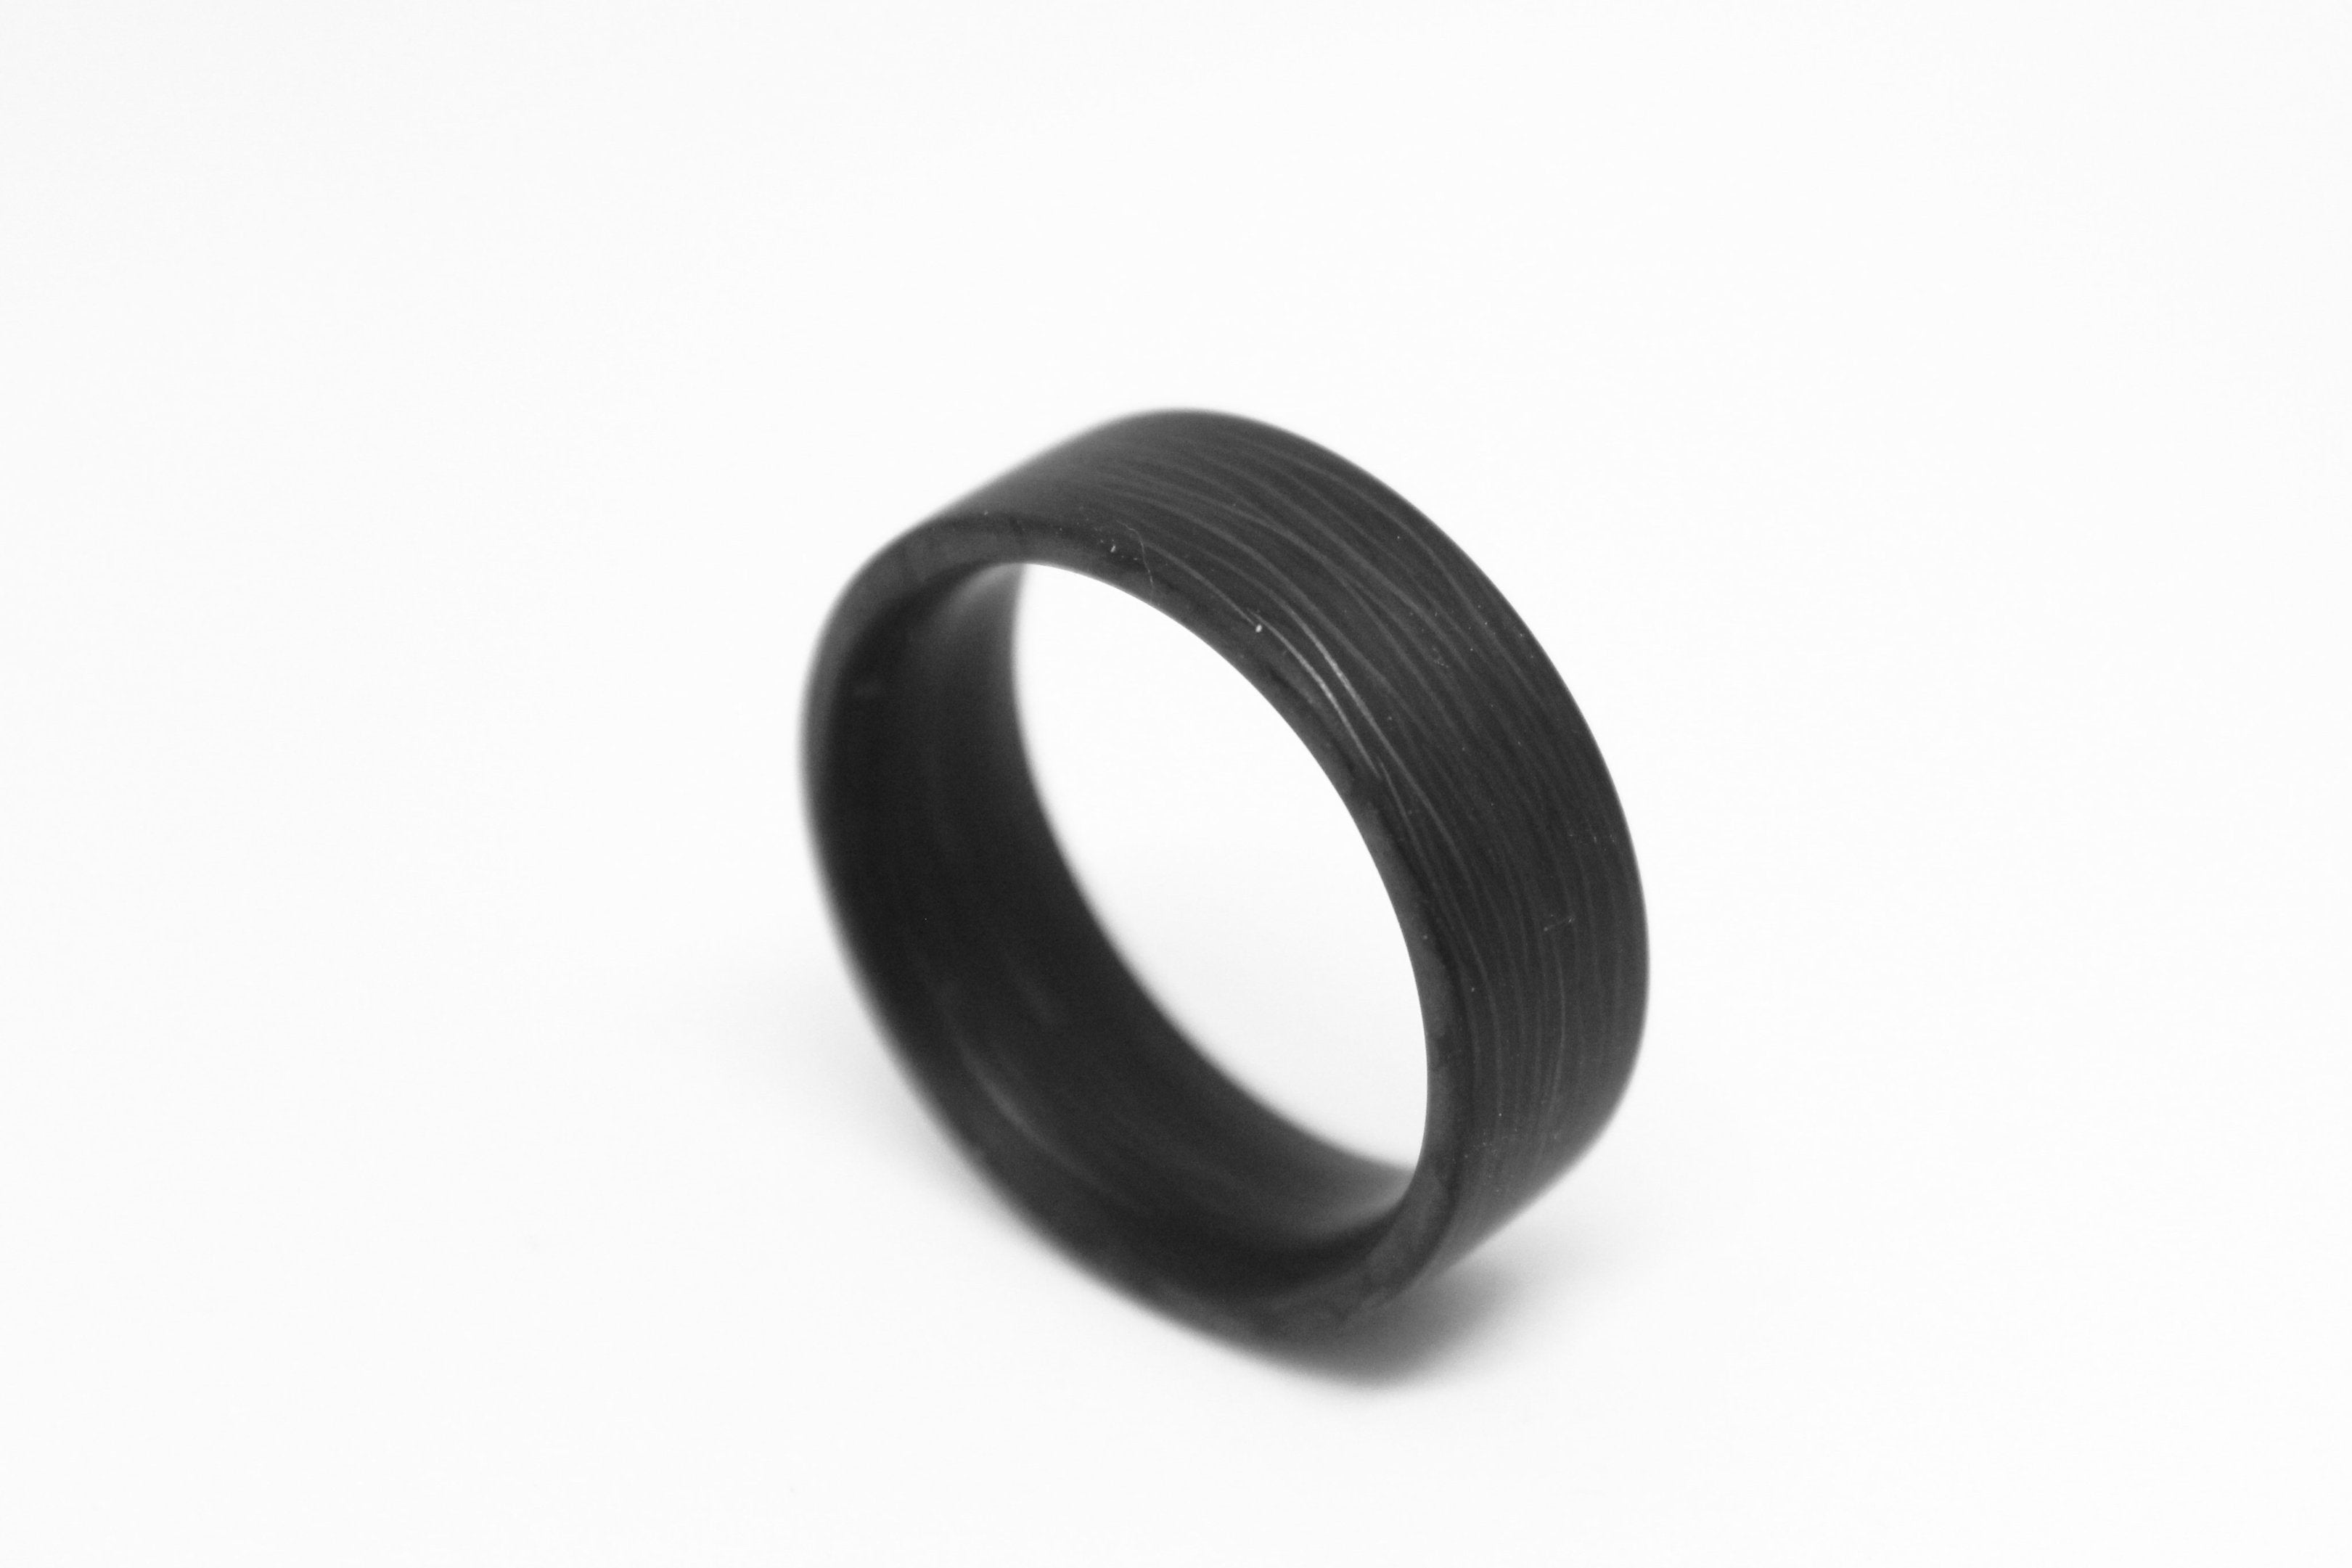 Size 9 Space X Carbon Fiber Ring